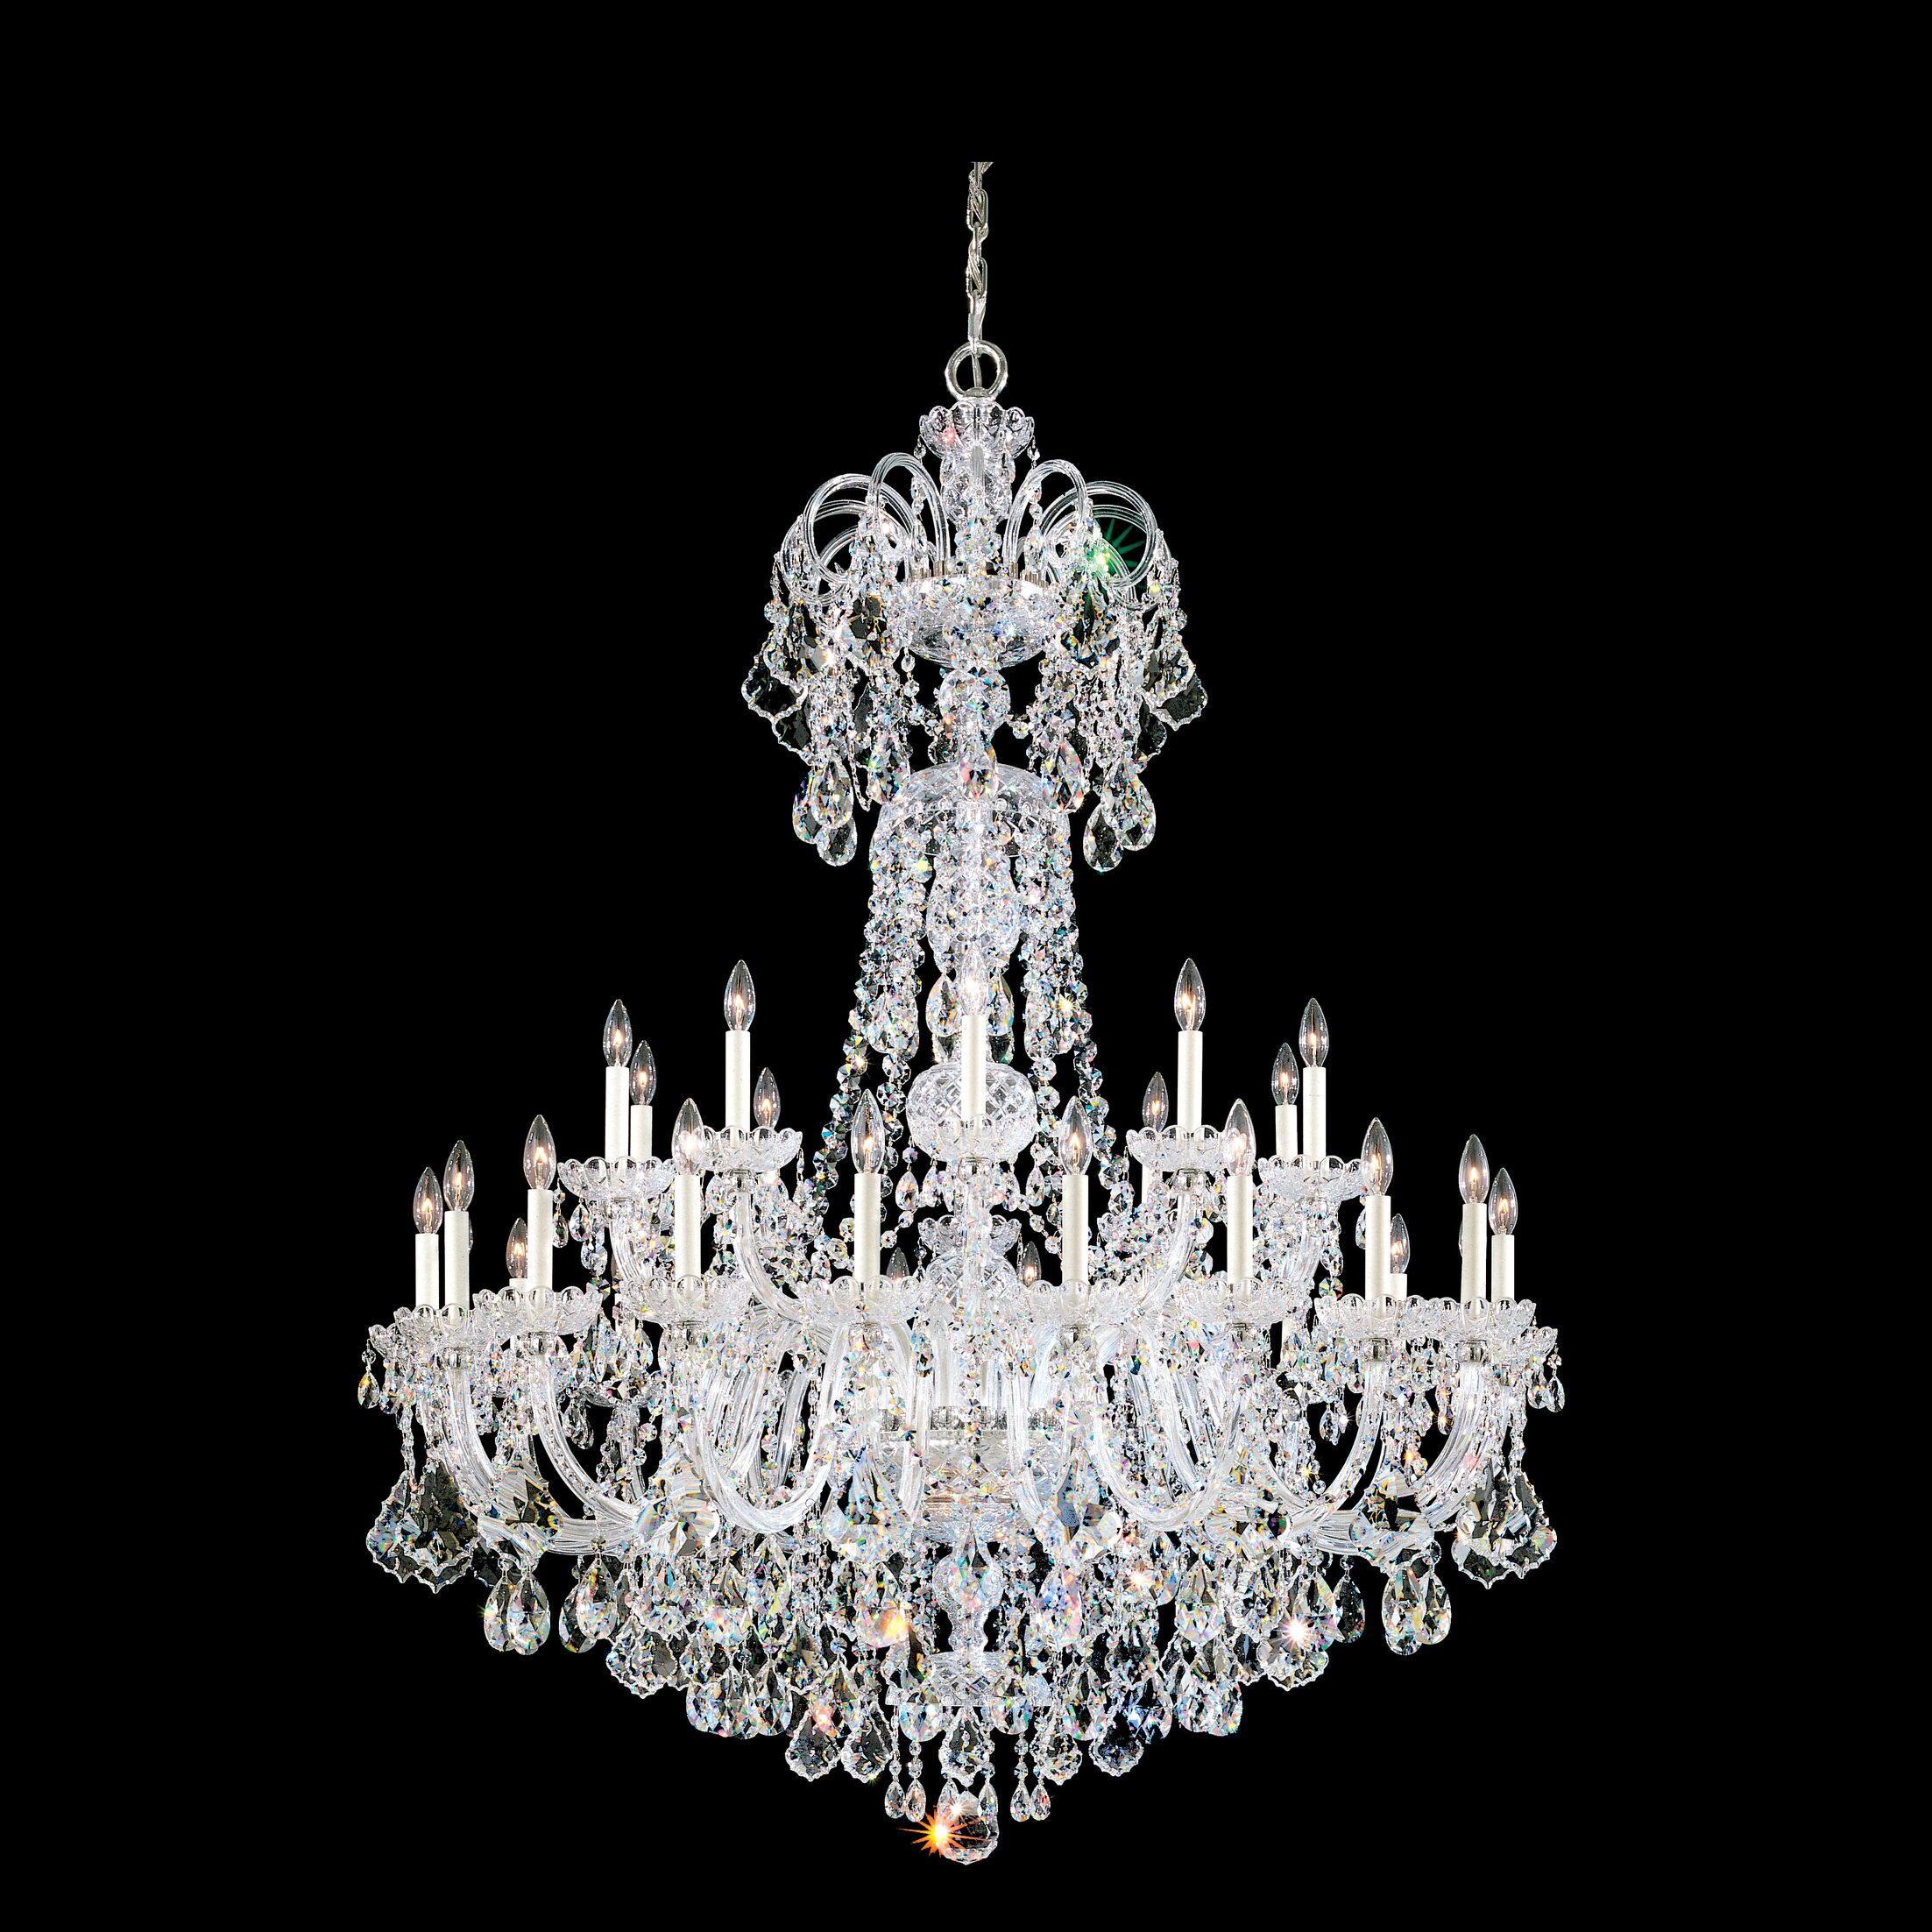 Olde World 35-Light Chandelier Crystal Type: Spectra Clear